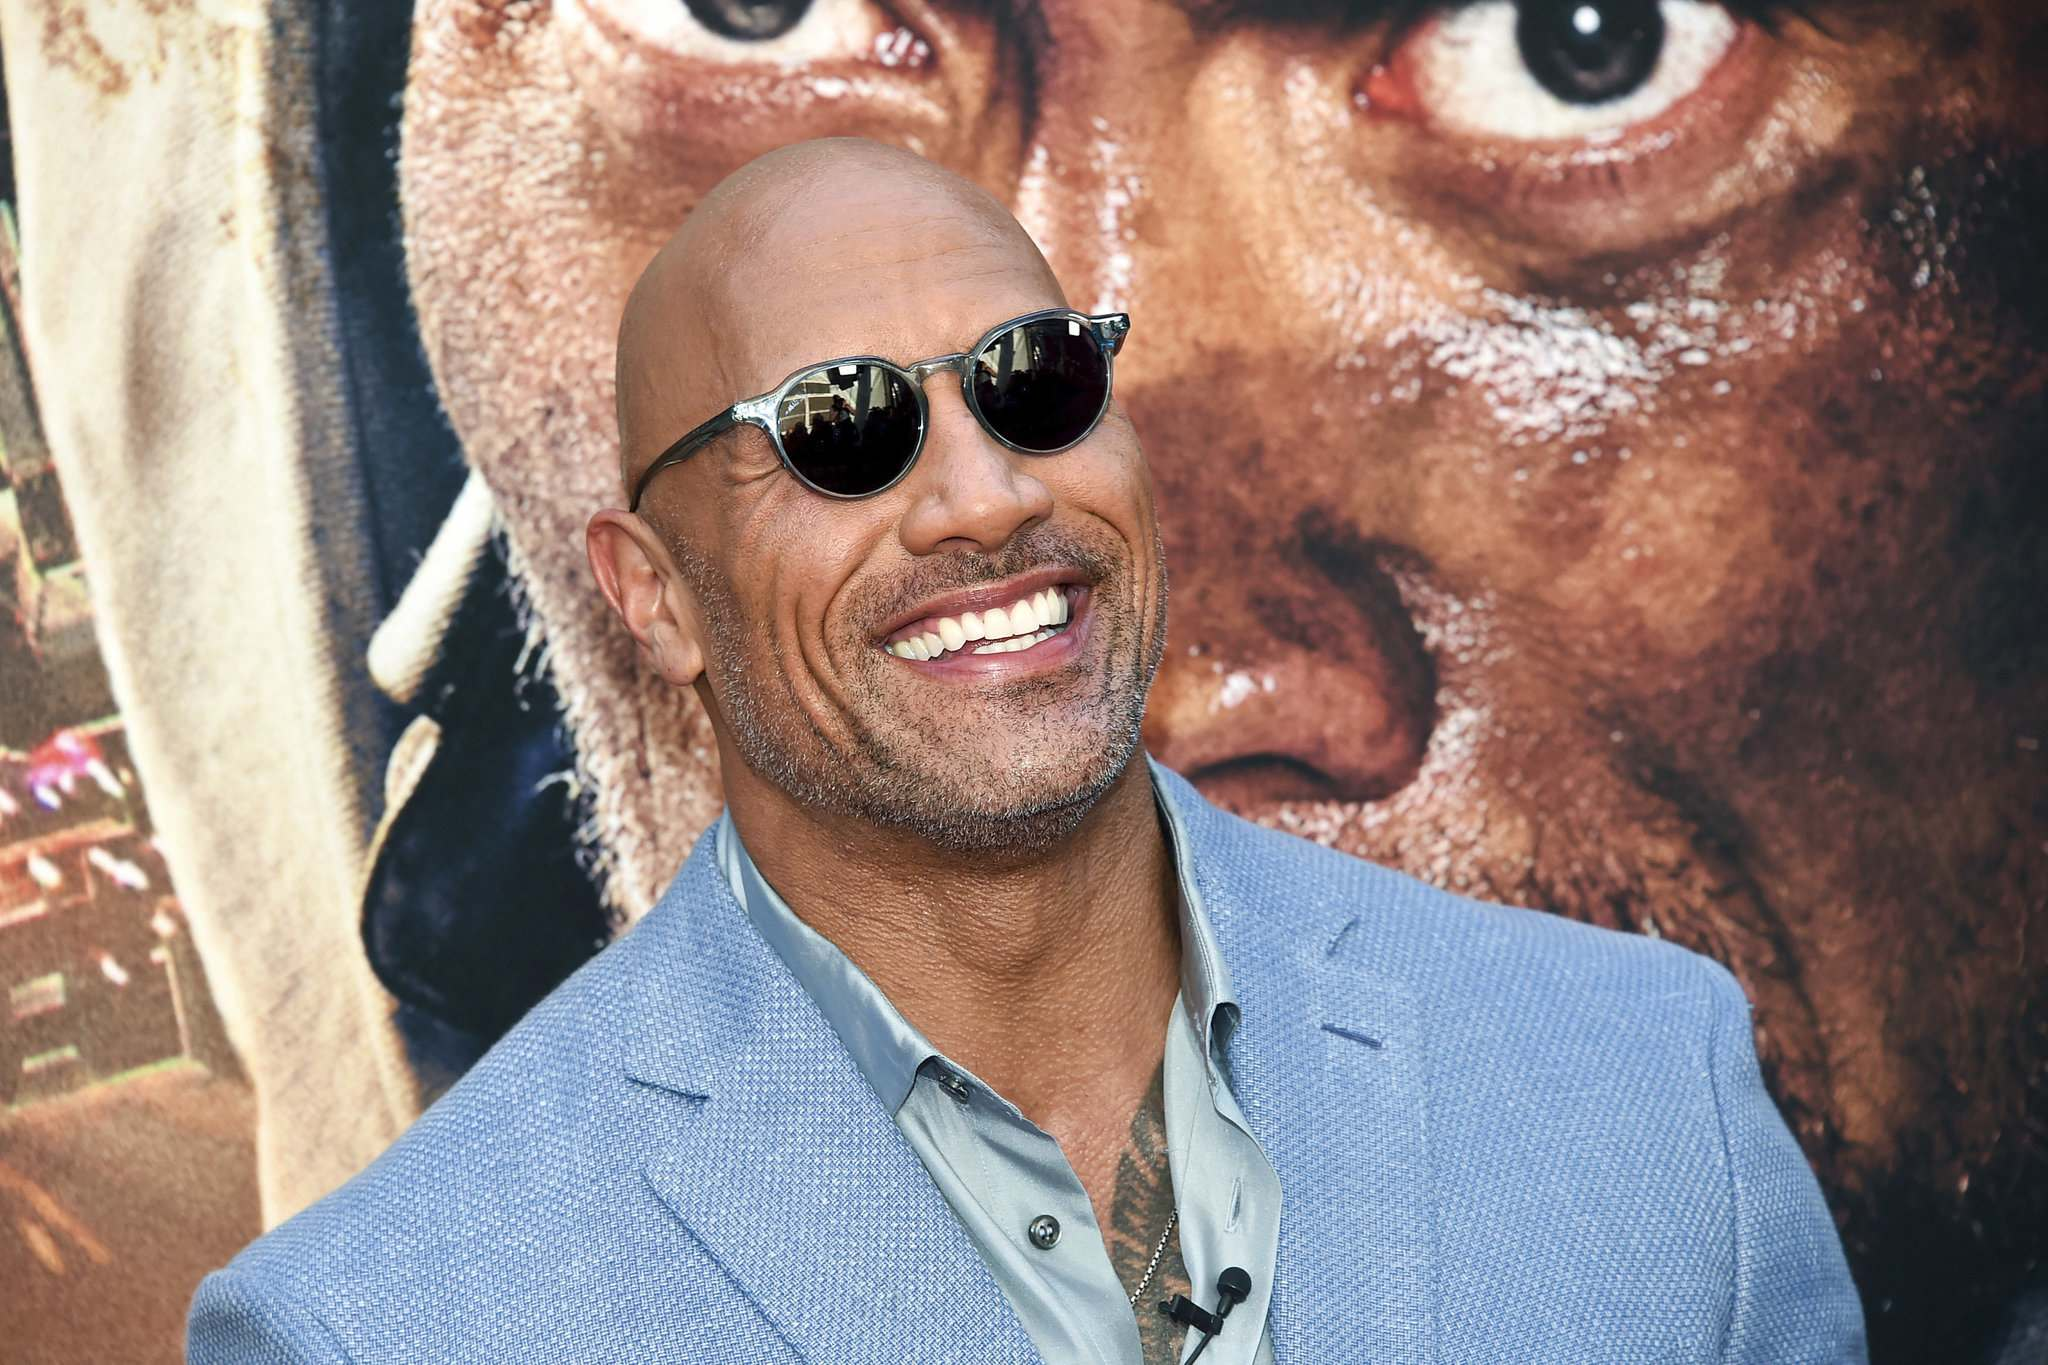 Dwayne (The Rock) Johnson fronts the XFL with his ex-wife and business partner, Dany Garcia, and they're looking to join forces with the Canadian Football League. (File)</p></p>